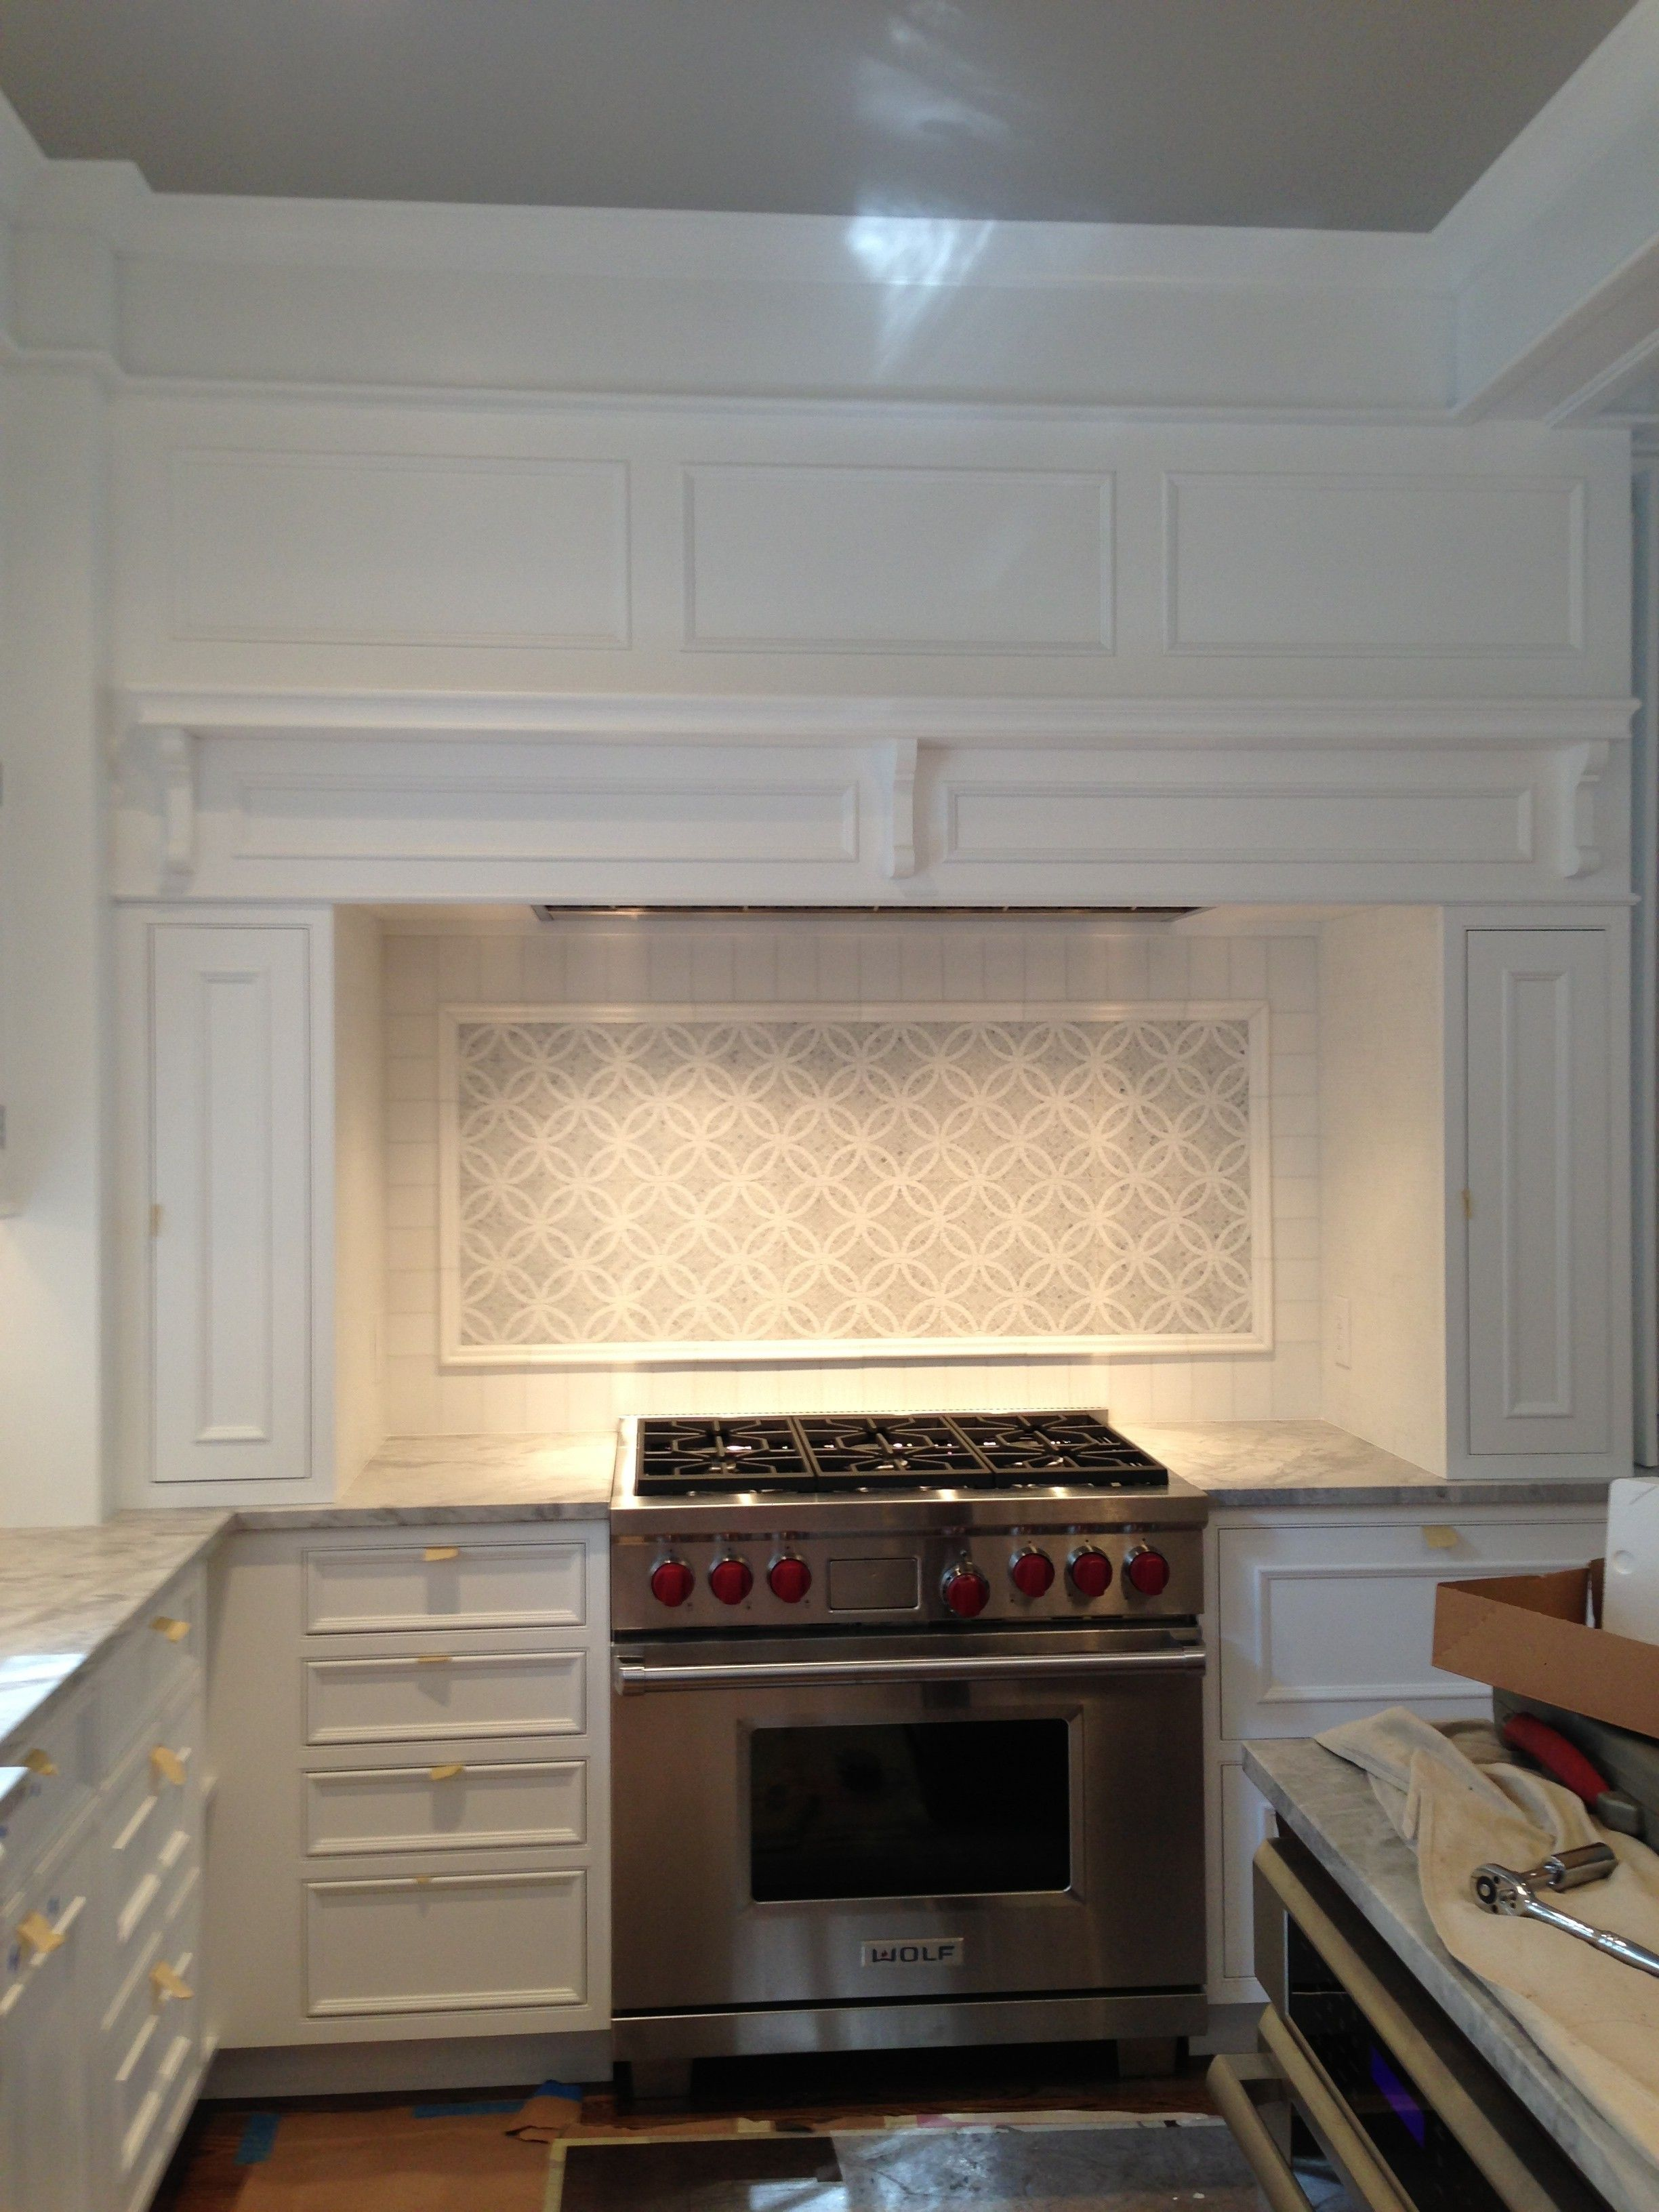 Moulding, Granite Countertops Omaha Modern S Caesarstone Tile Ideas  Interior Kitchen Houston Agreeable Backsplash Gray Countertop Materials  Natural Stone ...